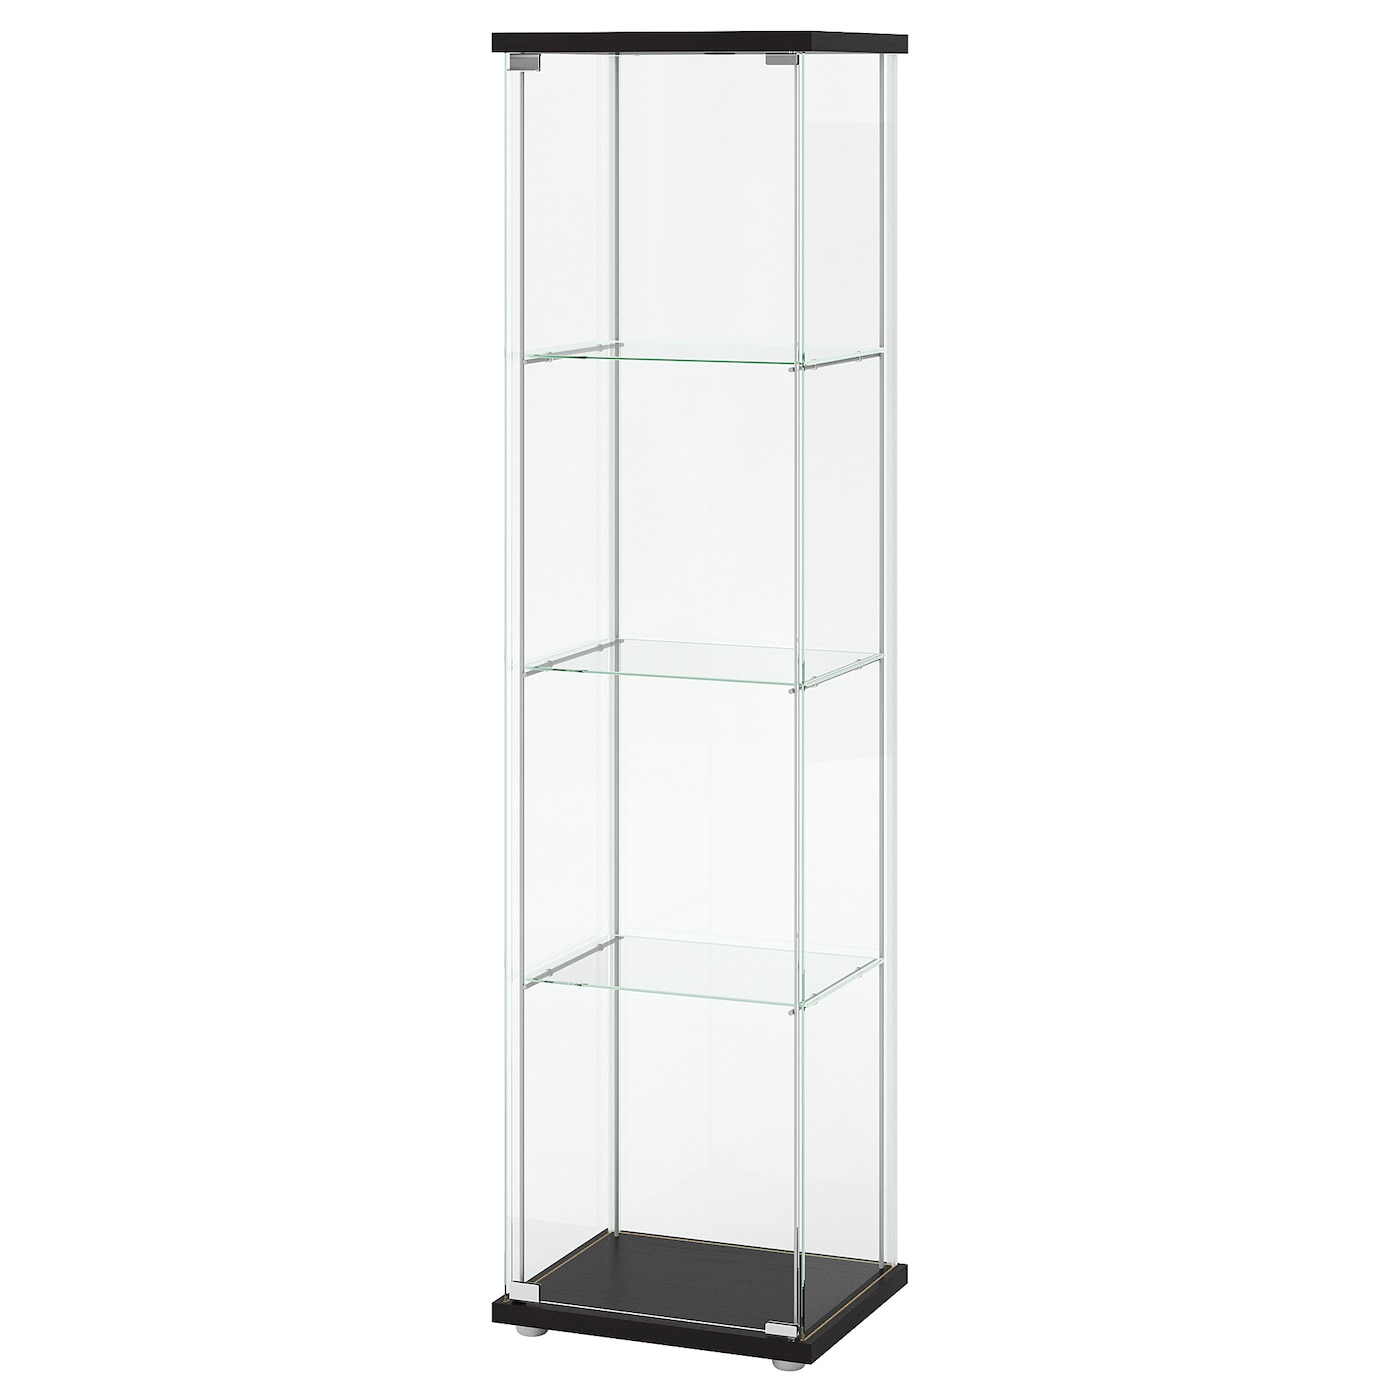 Picture of: Detolf Glass Door Cabinet Black Brown 16 3 4×64 1 8 Ikea